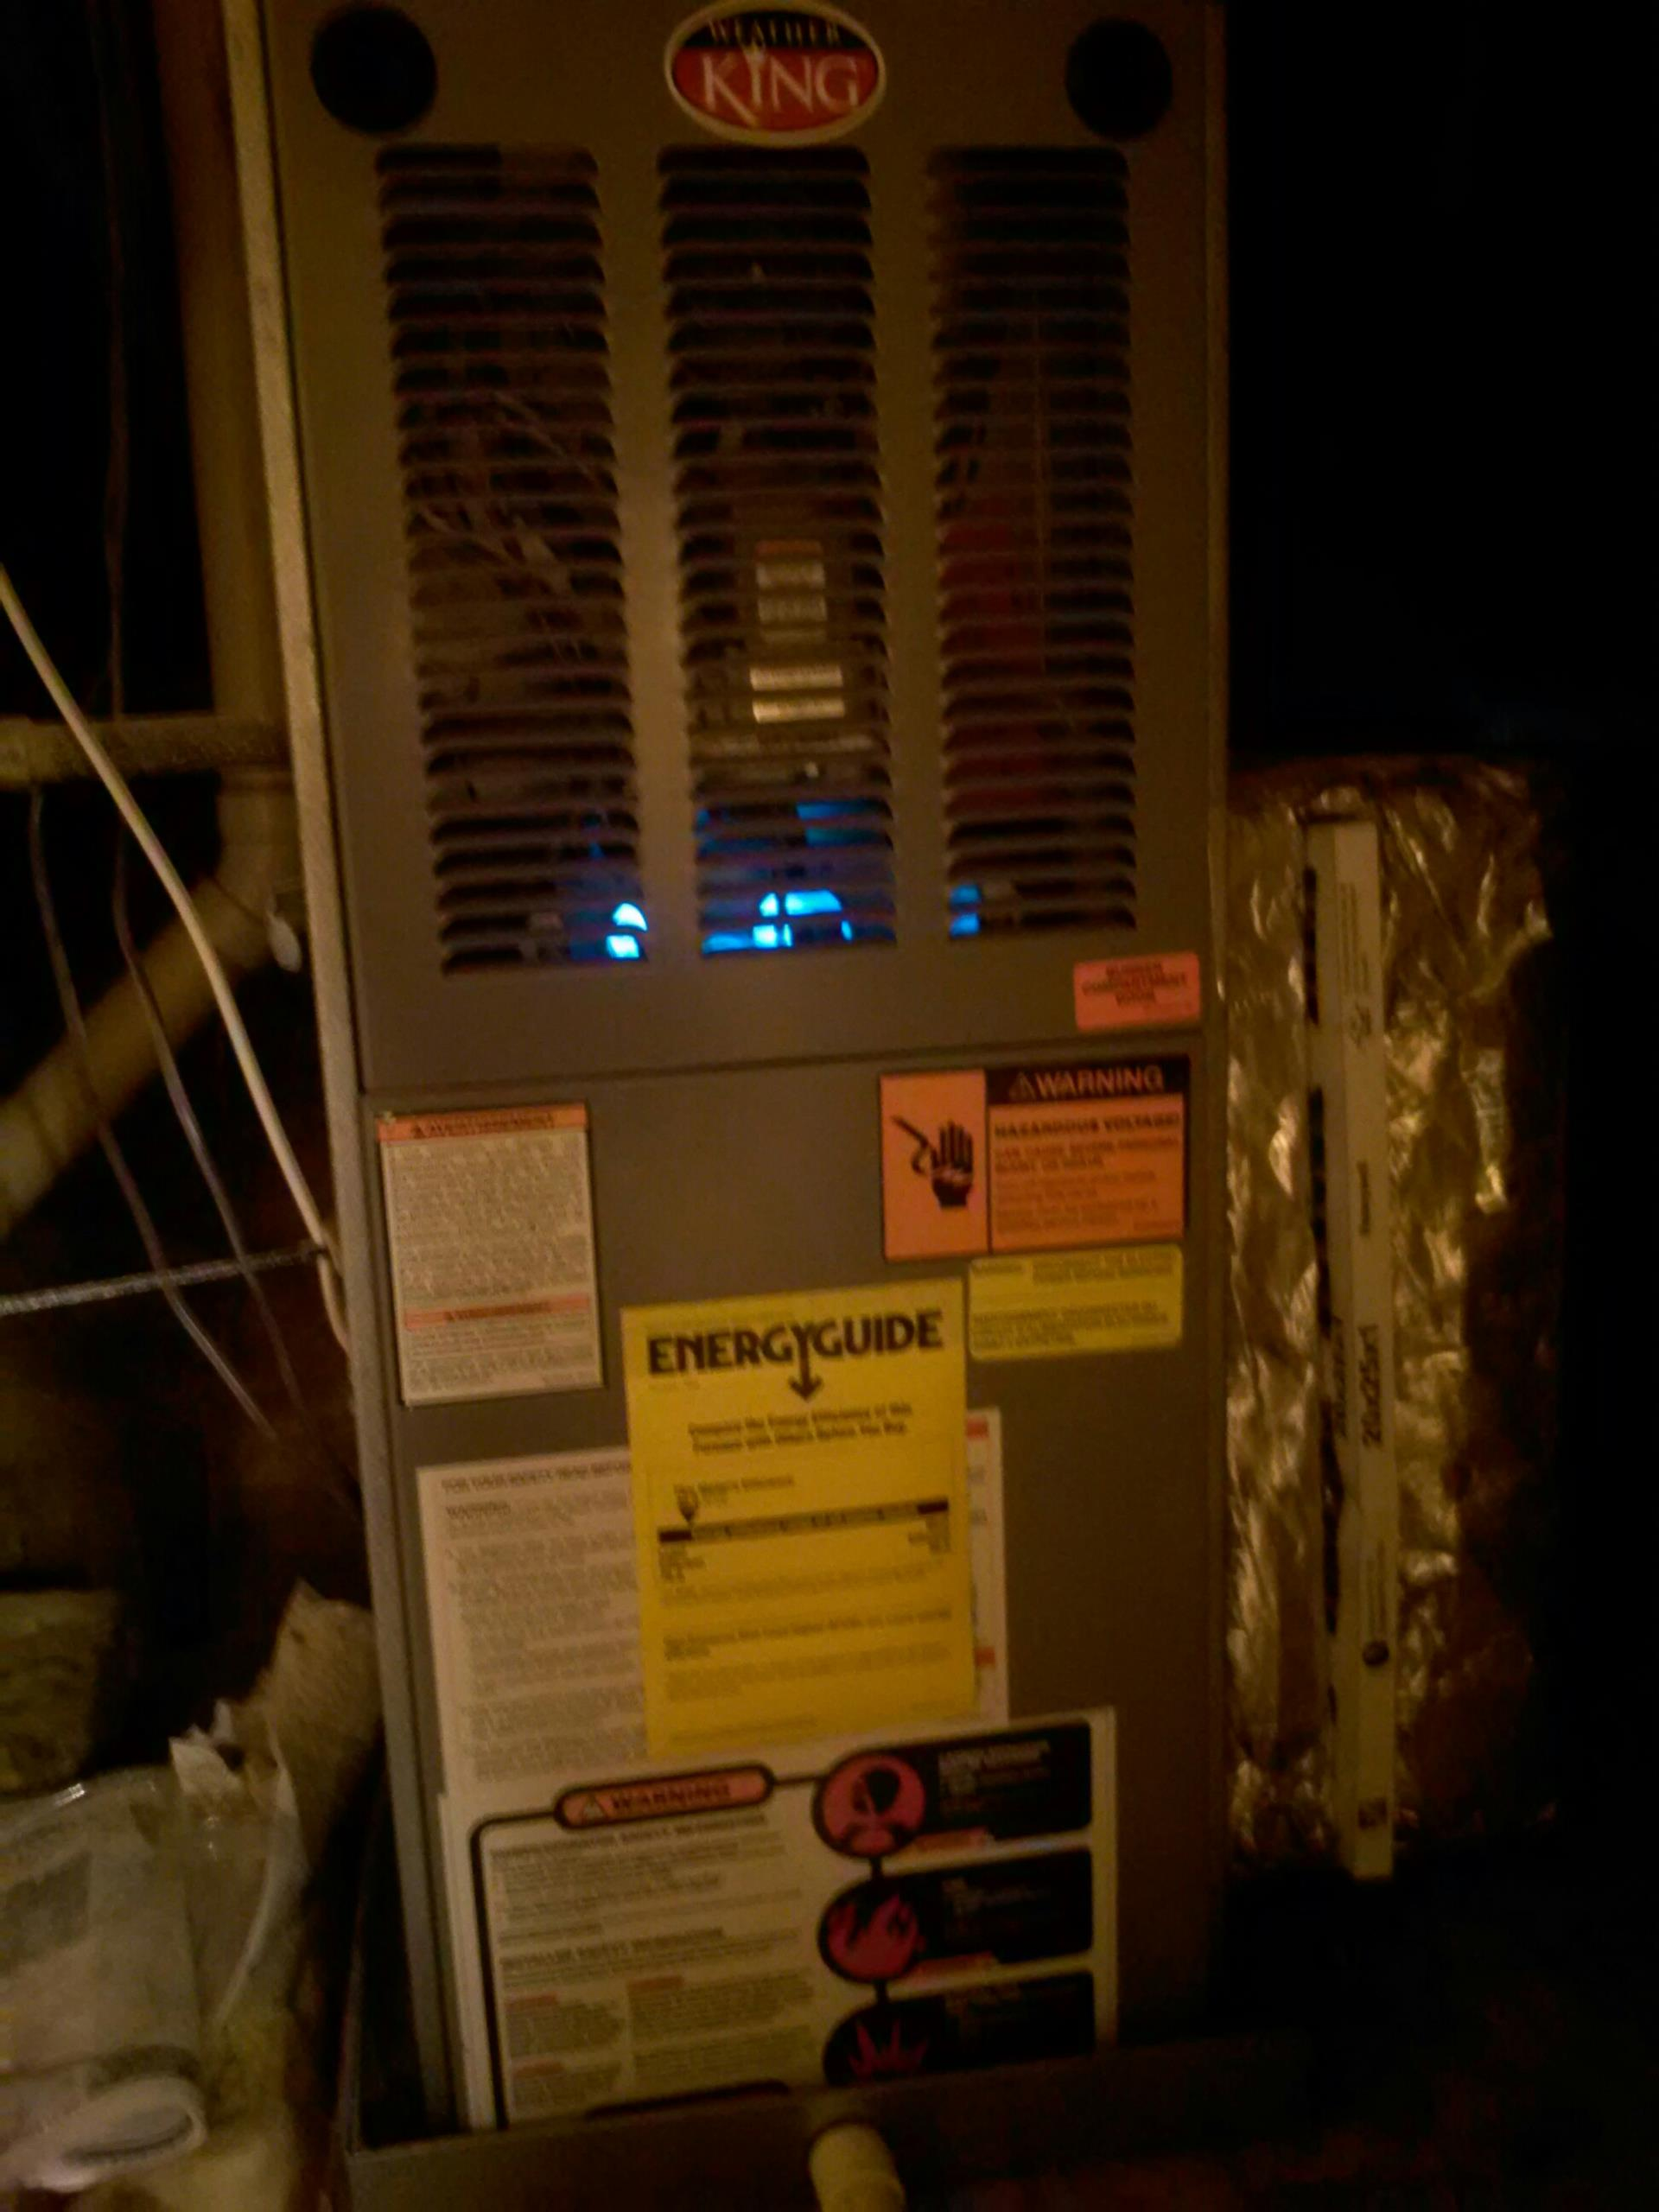 Crofton, MD - Crofton Maryland Weather King gas furnace heating system replacement installation repair service call.